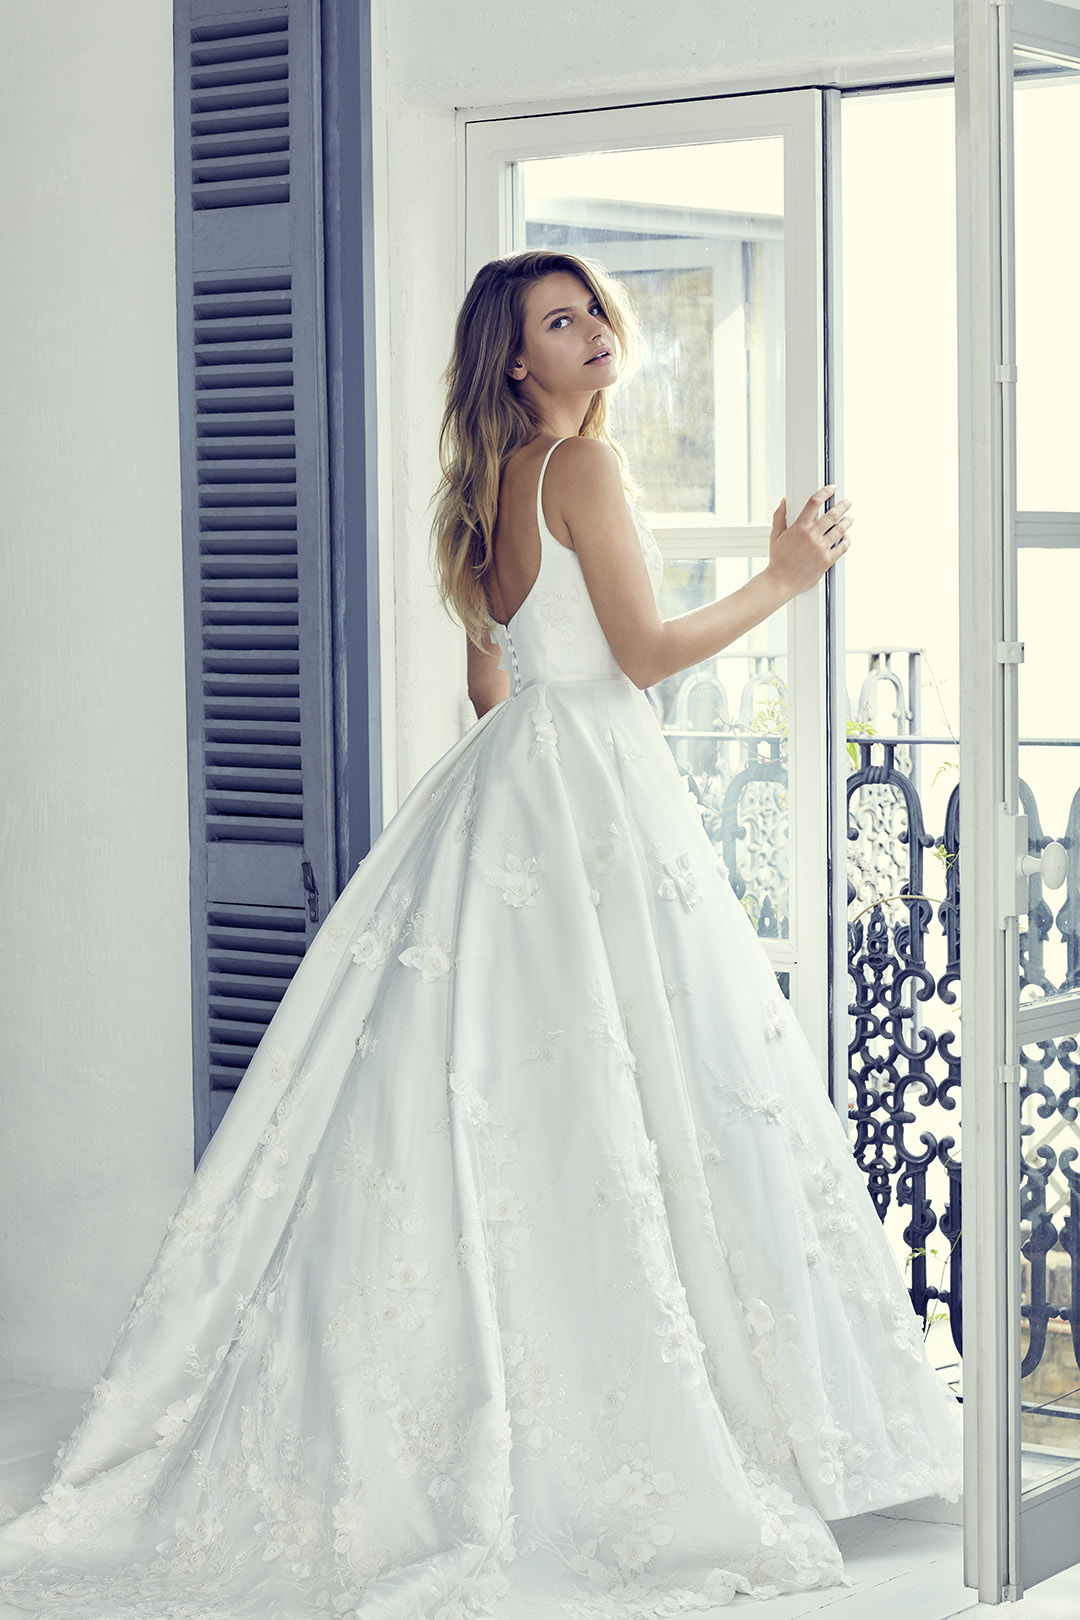 eternity1-wedding-dresses-uk-suzanne-neville-collection-hd-2019